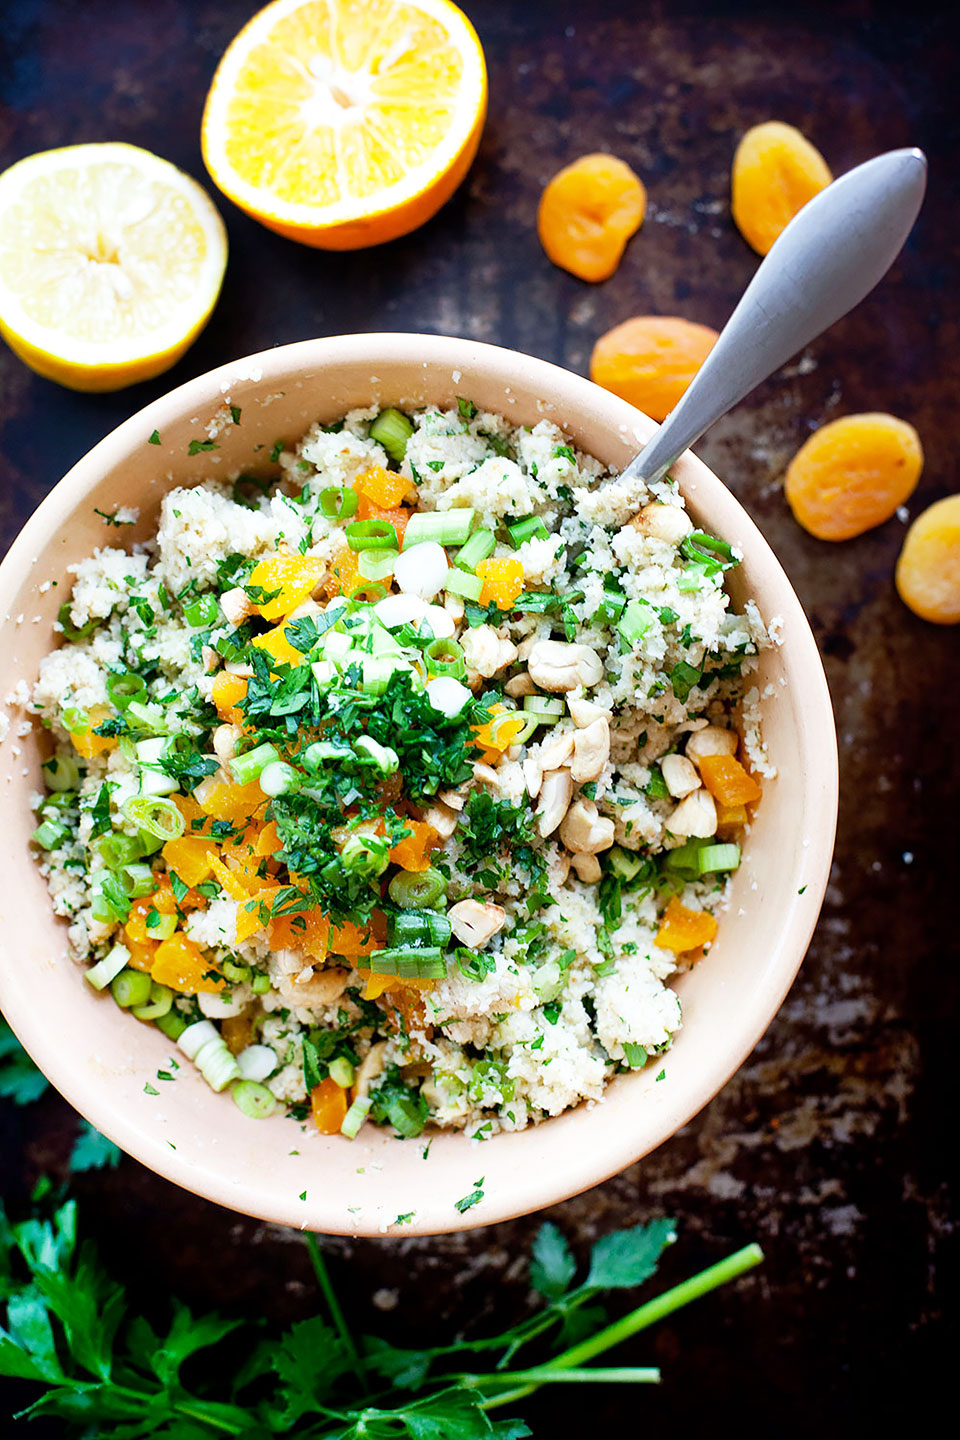 Cauliflower Couscous Salad with Apricots and Cashews | Vegan, gluten-free, and paleo. | Loveleaf Co.